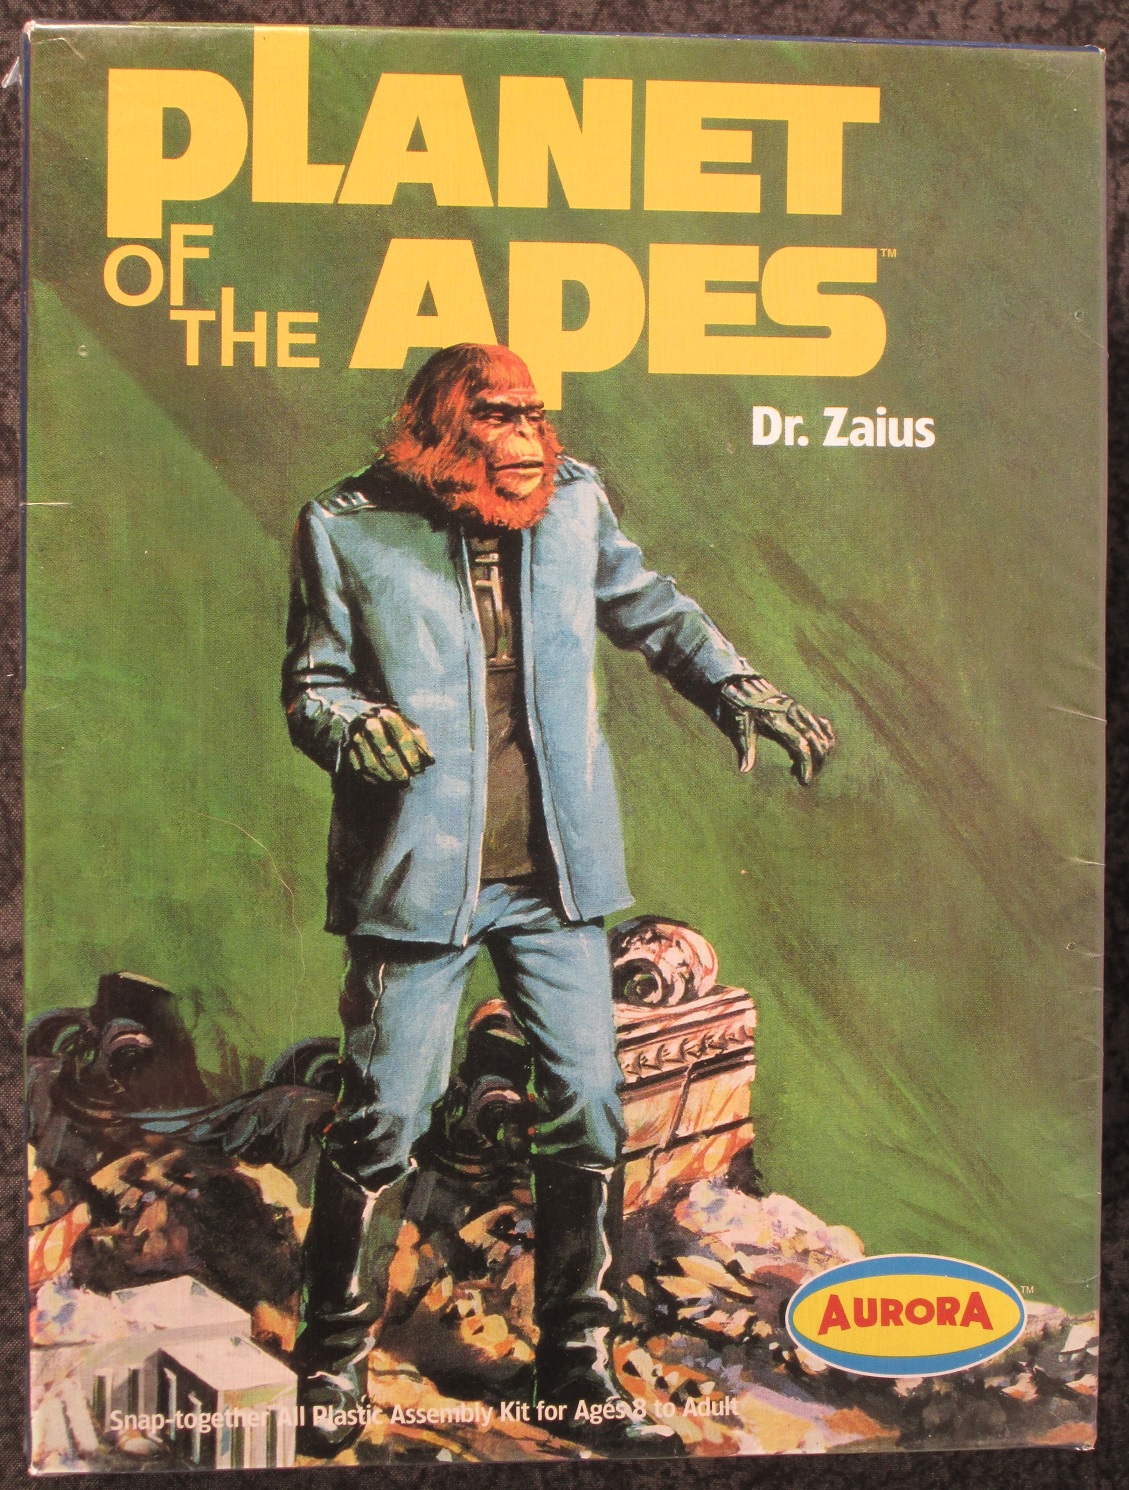 Aurora Planet Of The Apes Dr Zaius Aur 6805